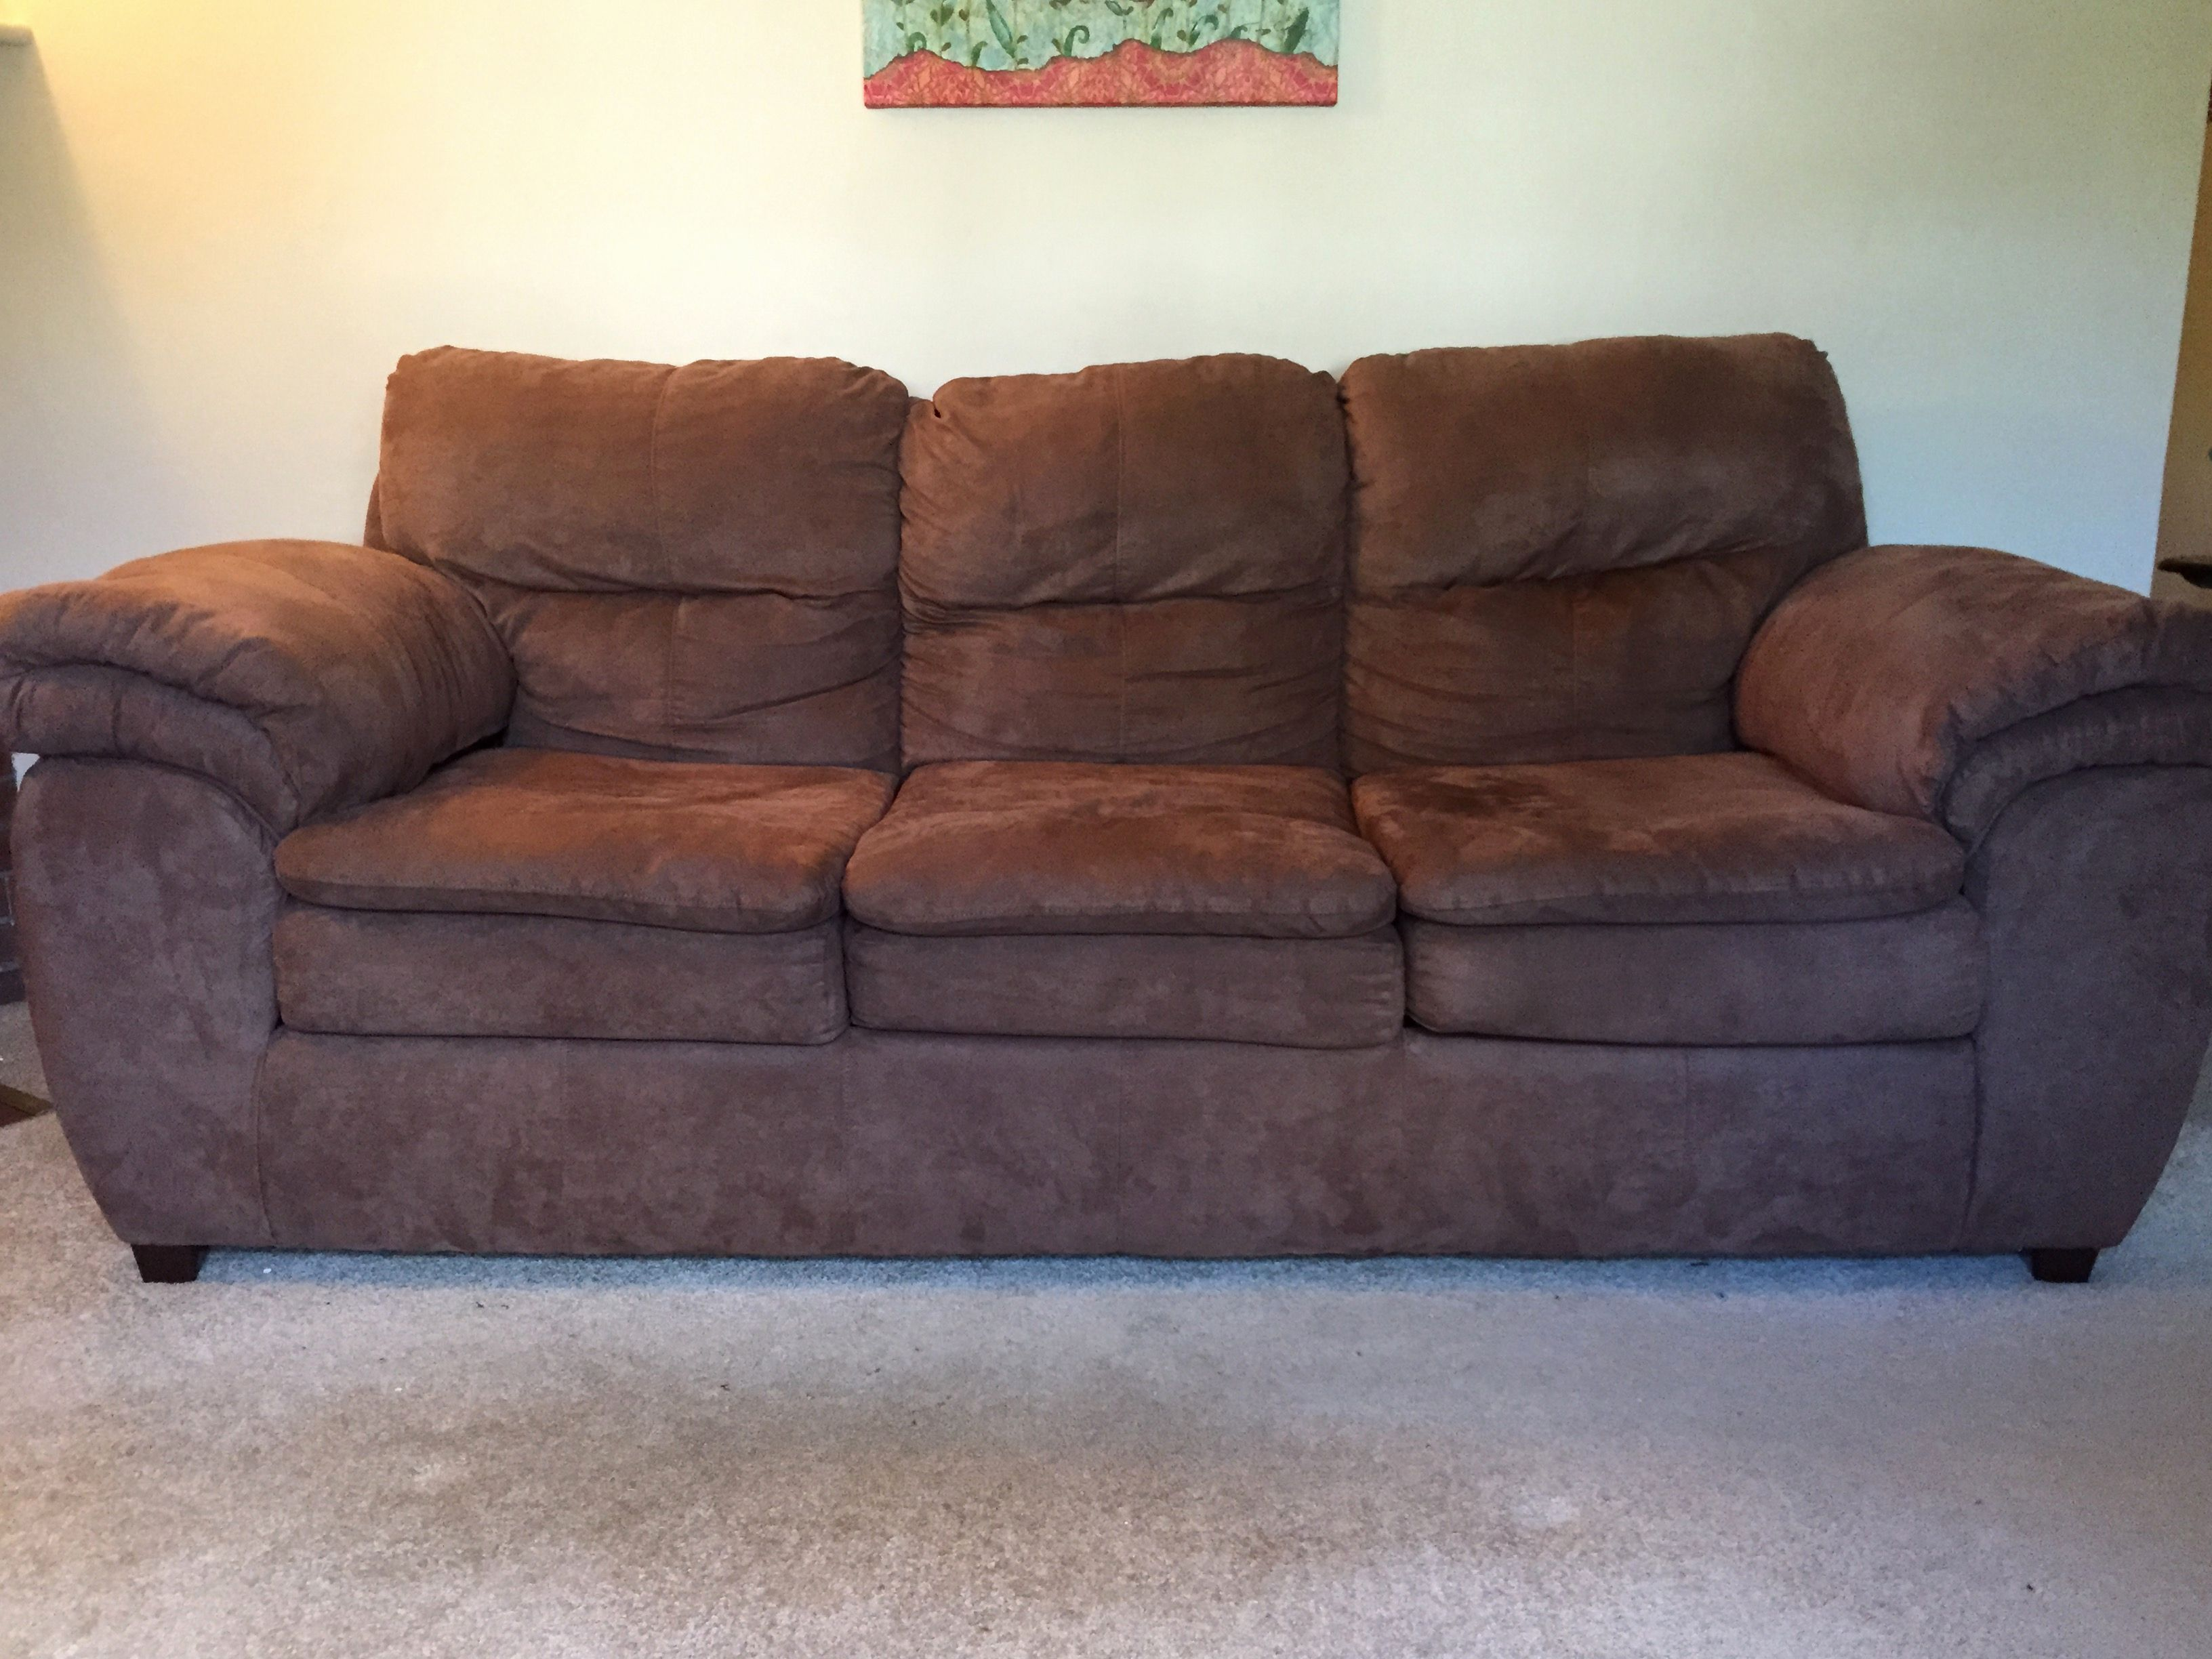 Awesome Chocolate Brown Microfiber Sofa Elegant Furniture Lovely Couch With Superb Color